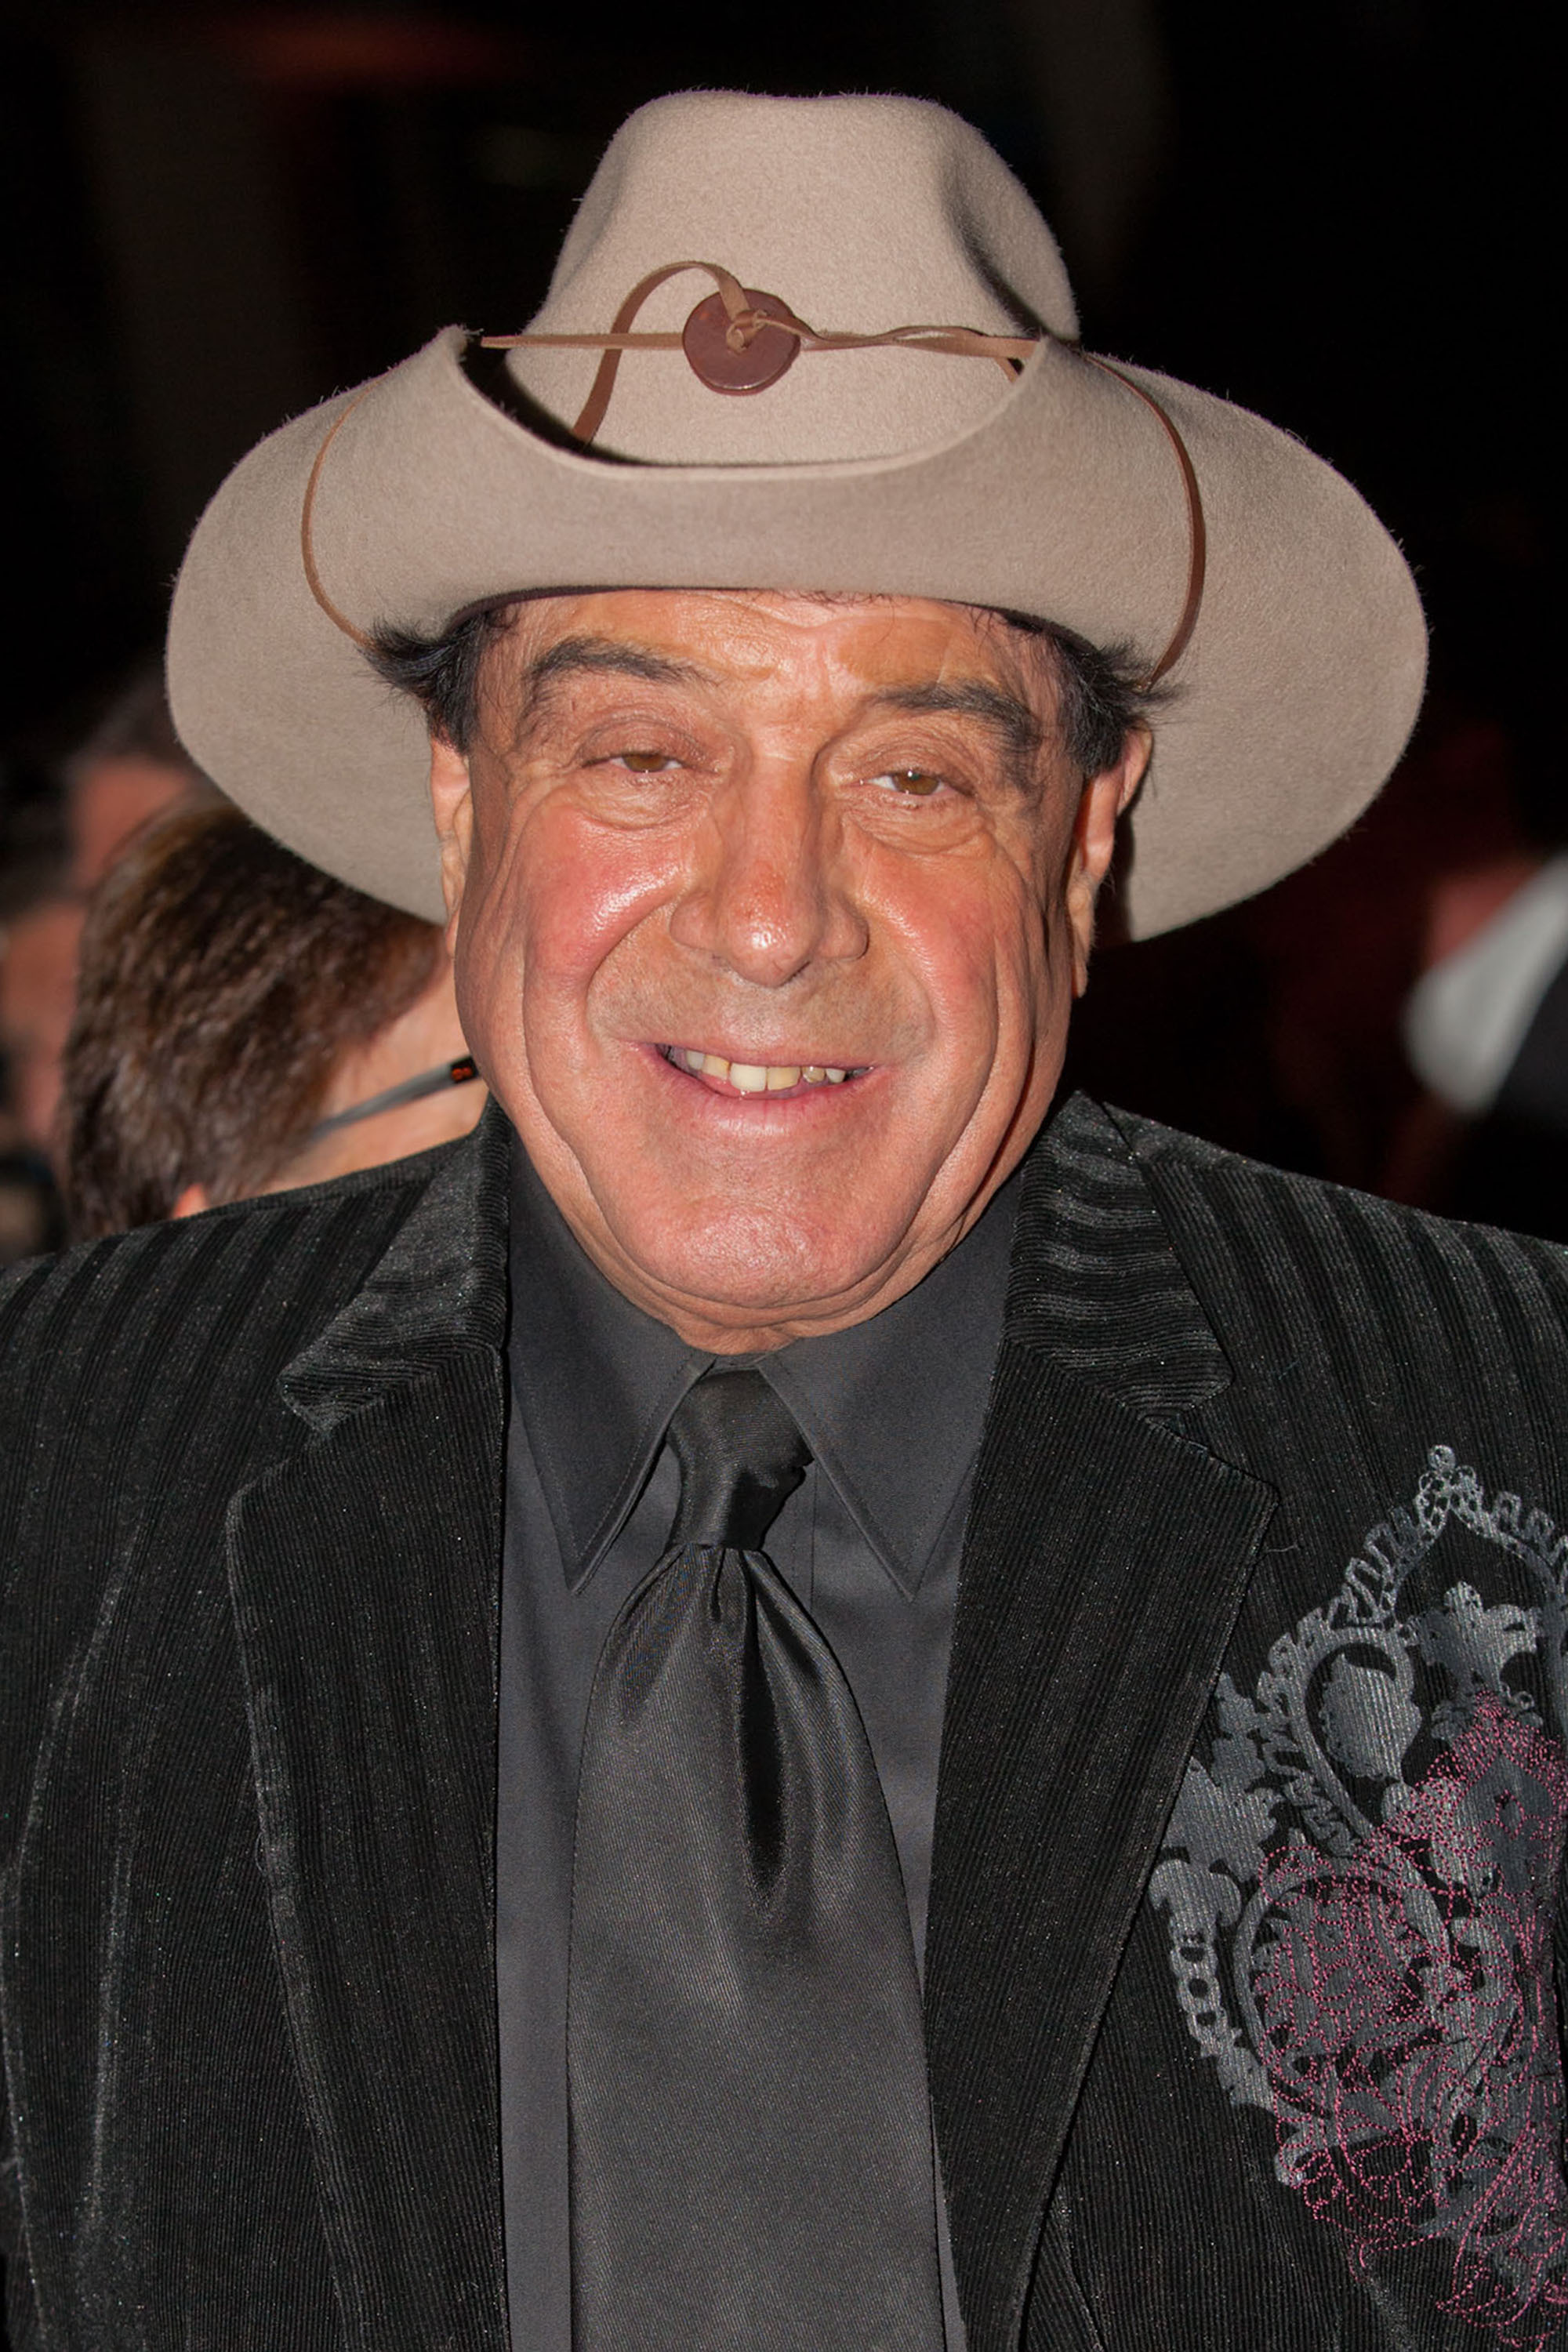 Molly Meldrum returns home